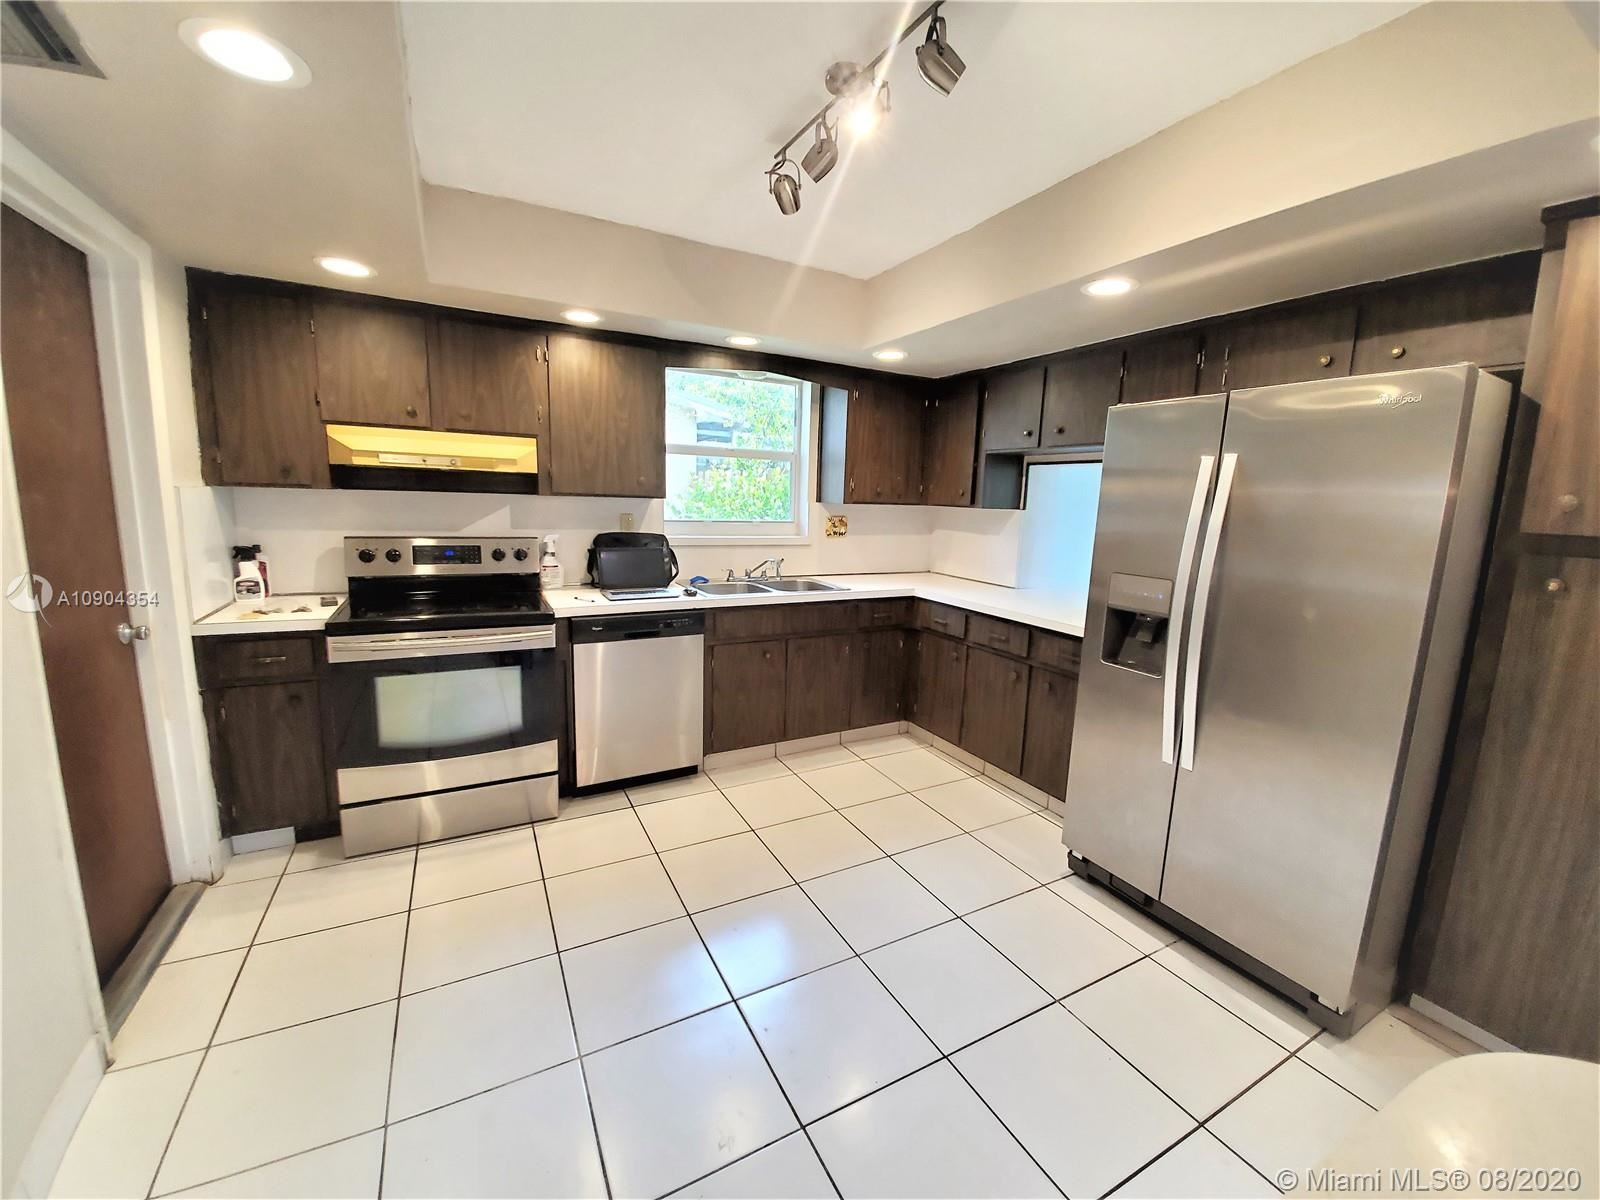 8751 NW 17th Ct, Pembroke Pines, FL 33024 - #: A10904354